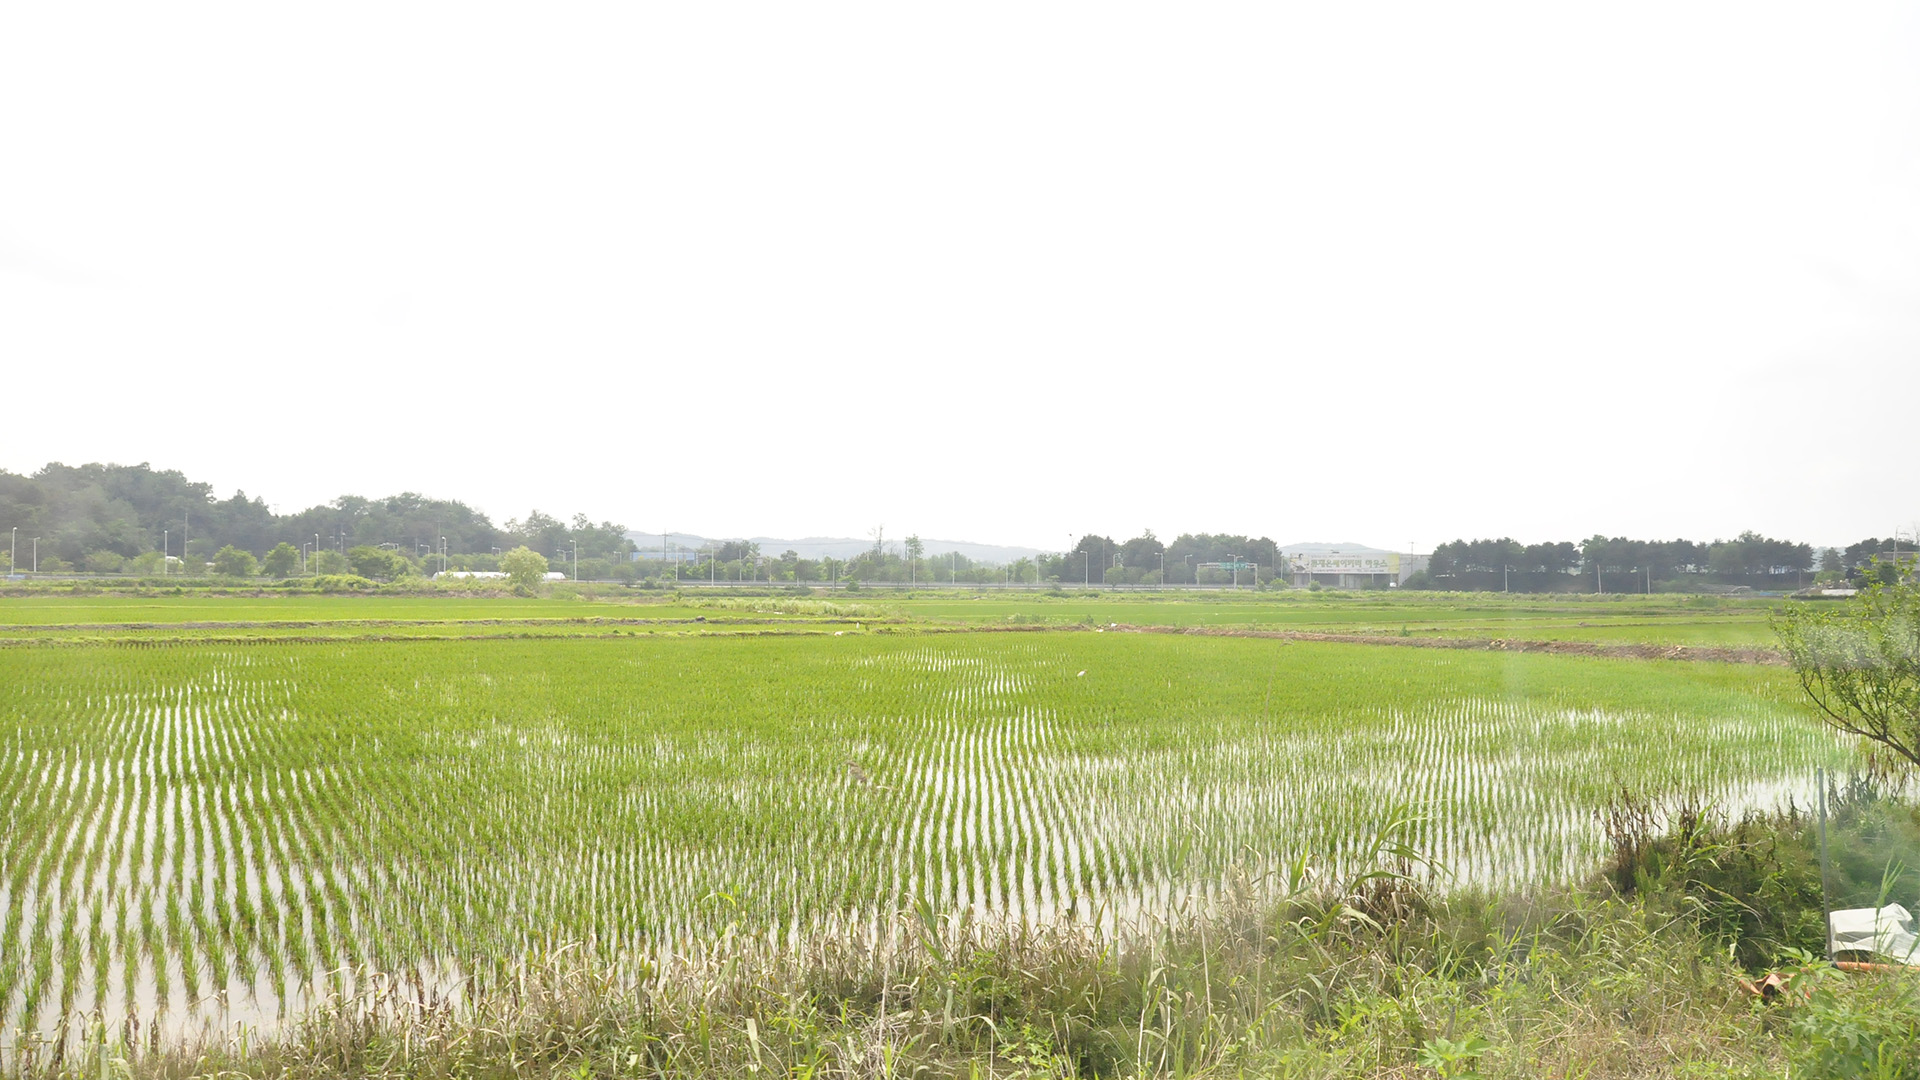 Rice fields near Paju City